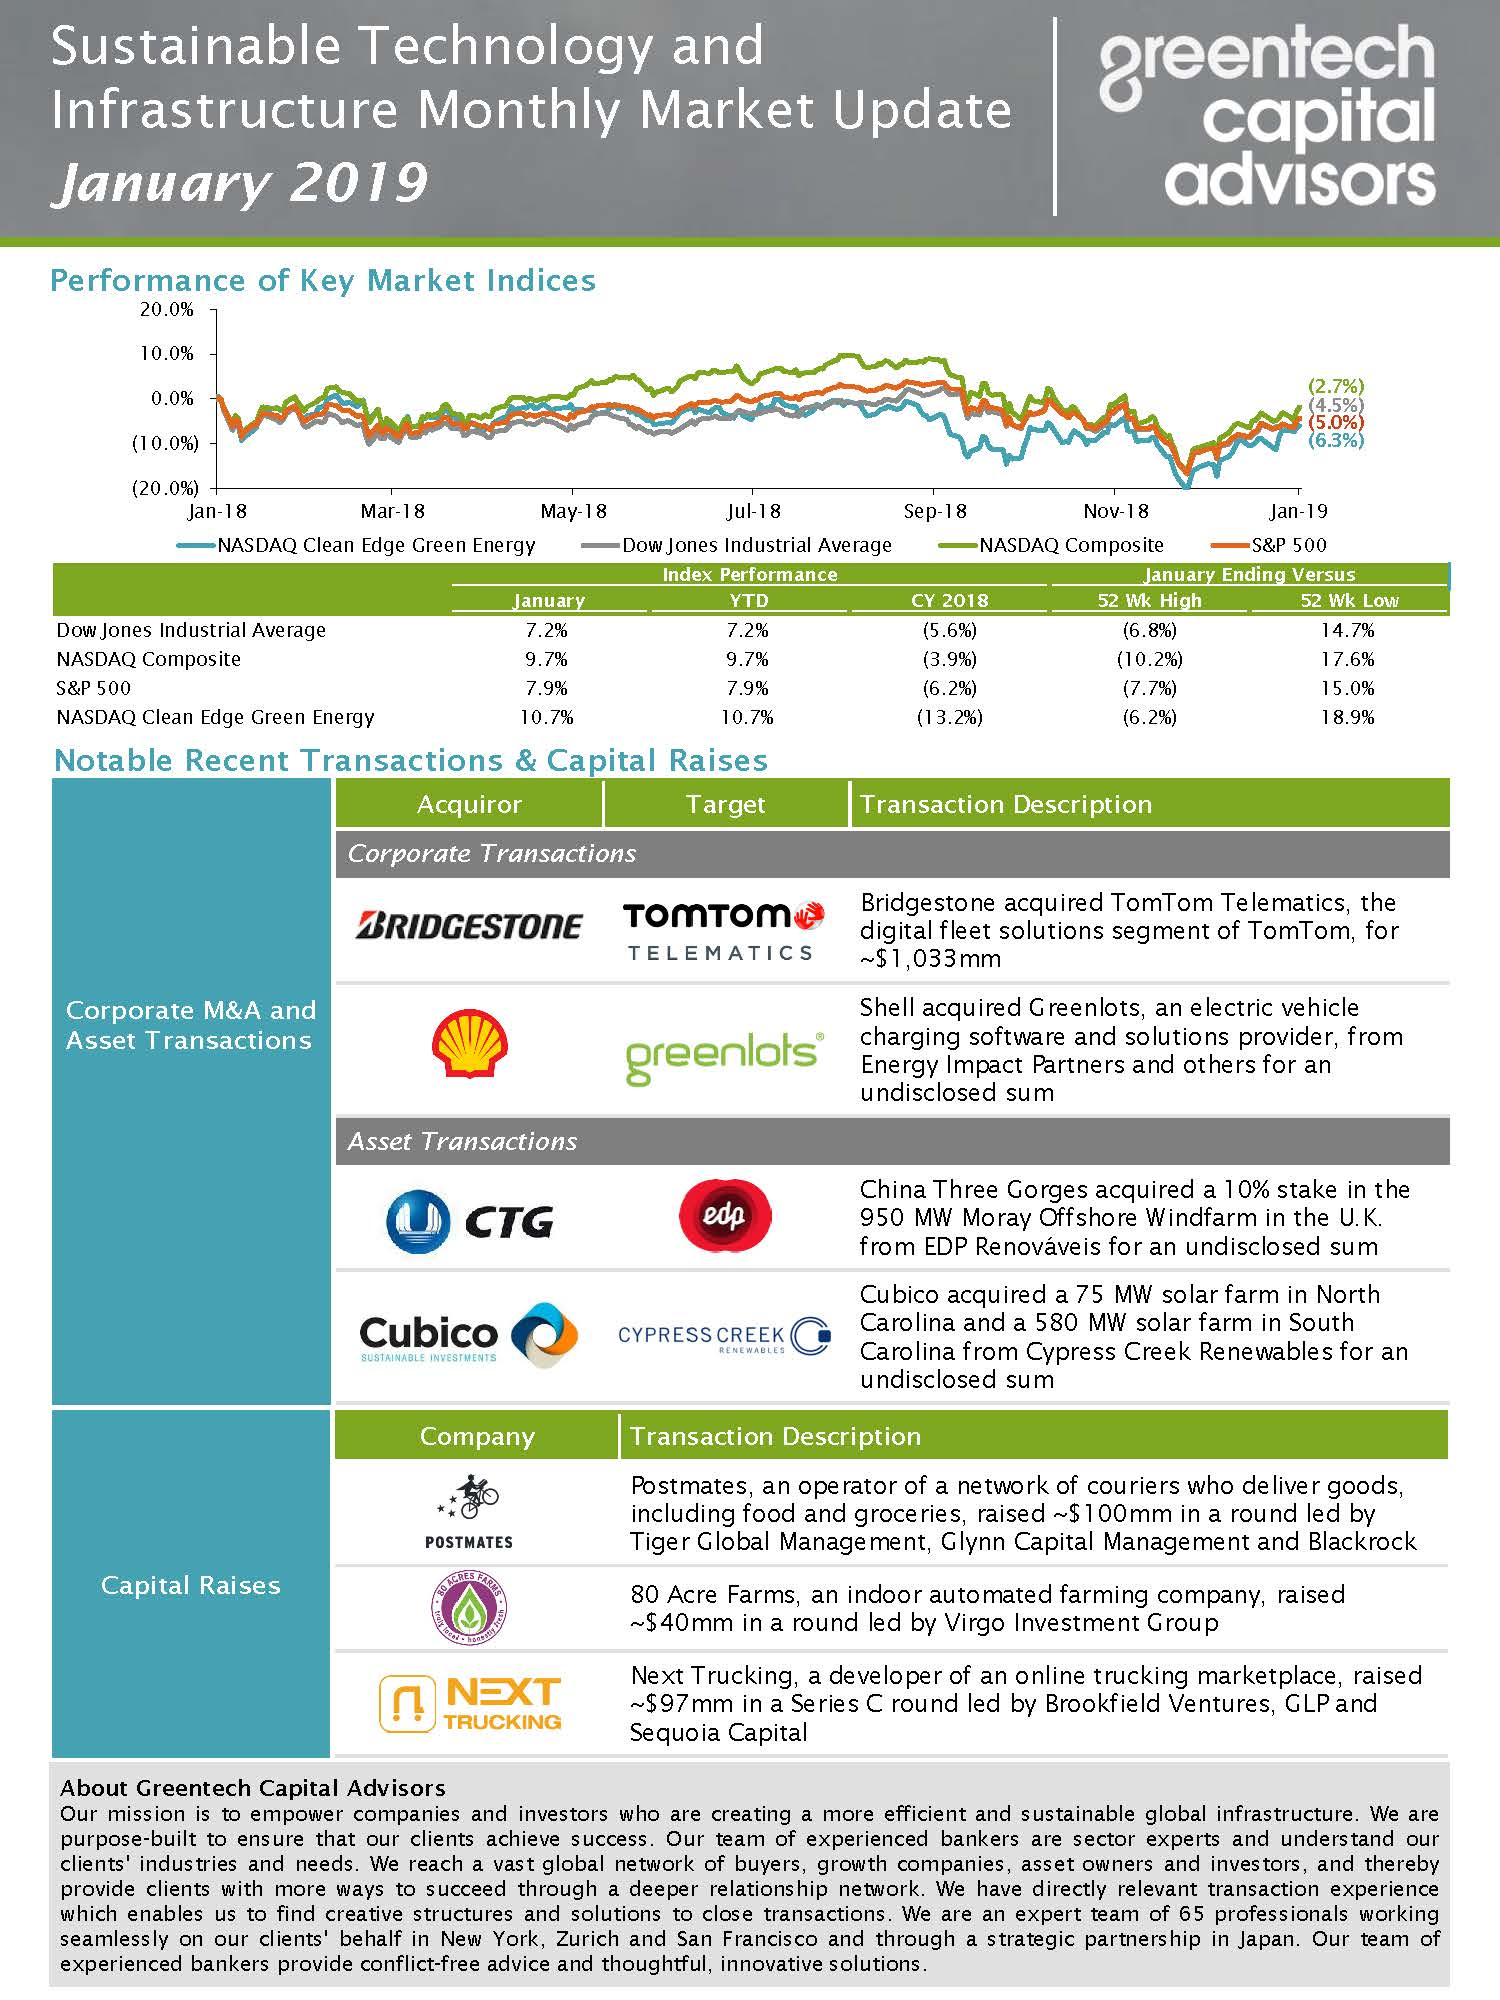 Sustainable Investing Monthly Market Update - Jan 2019